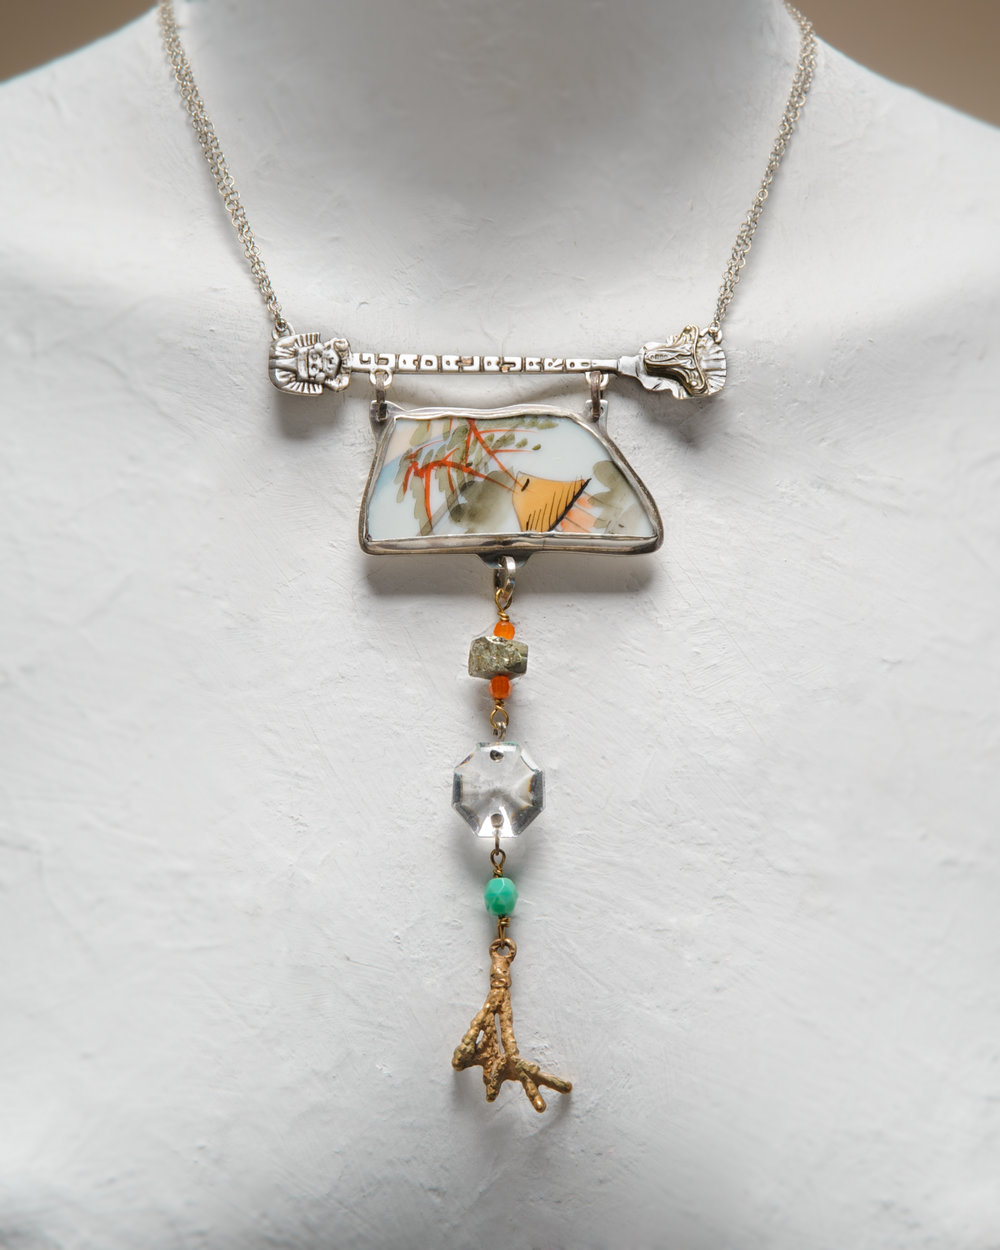 Necklace Casa.jpg